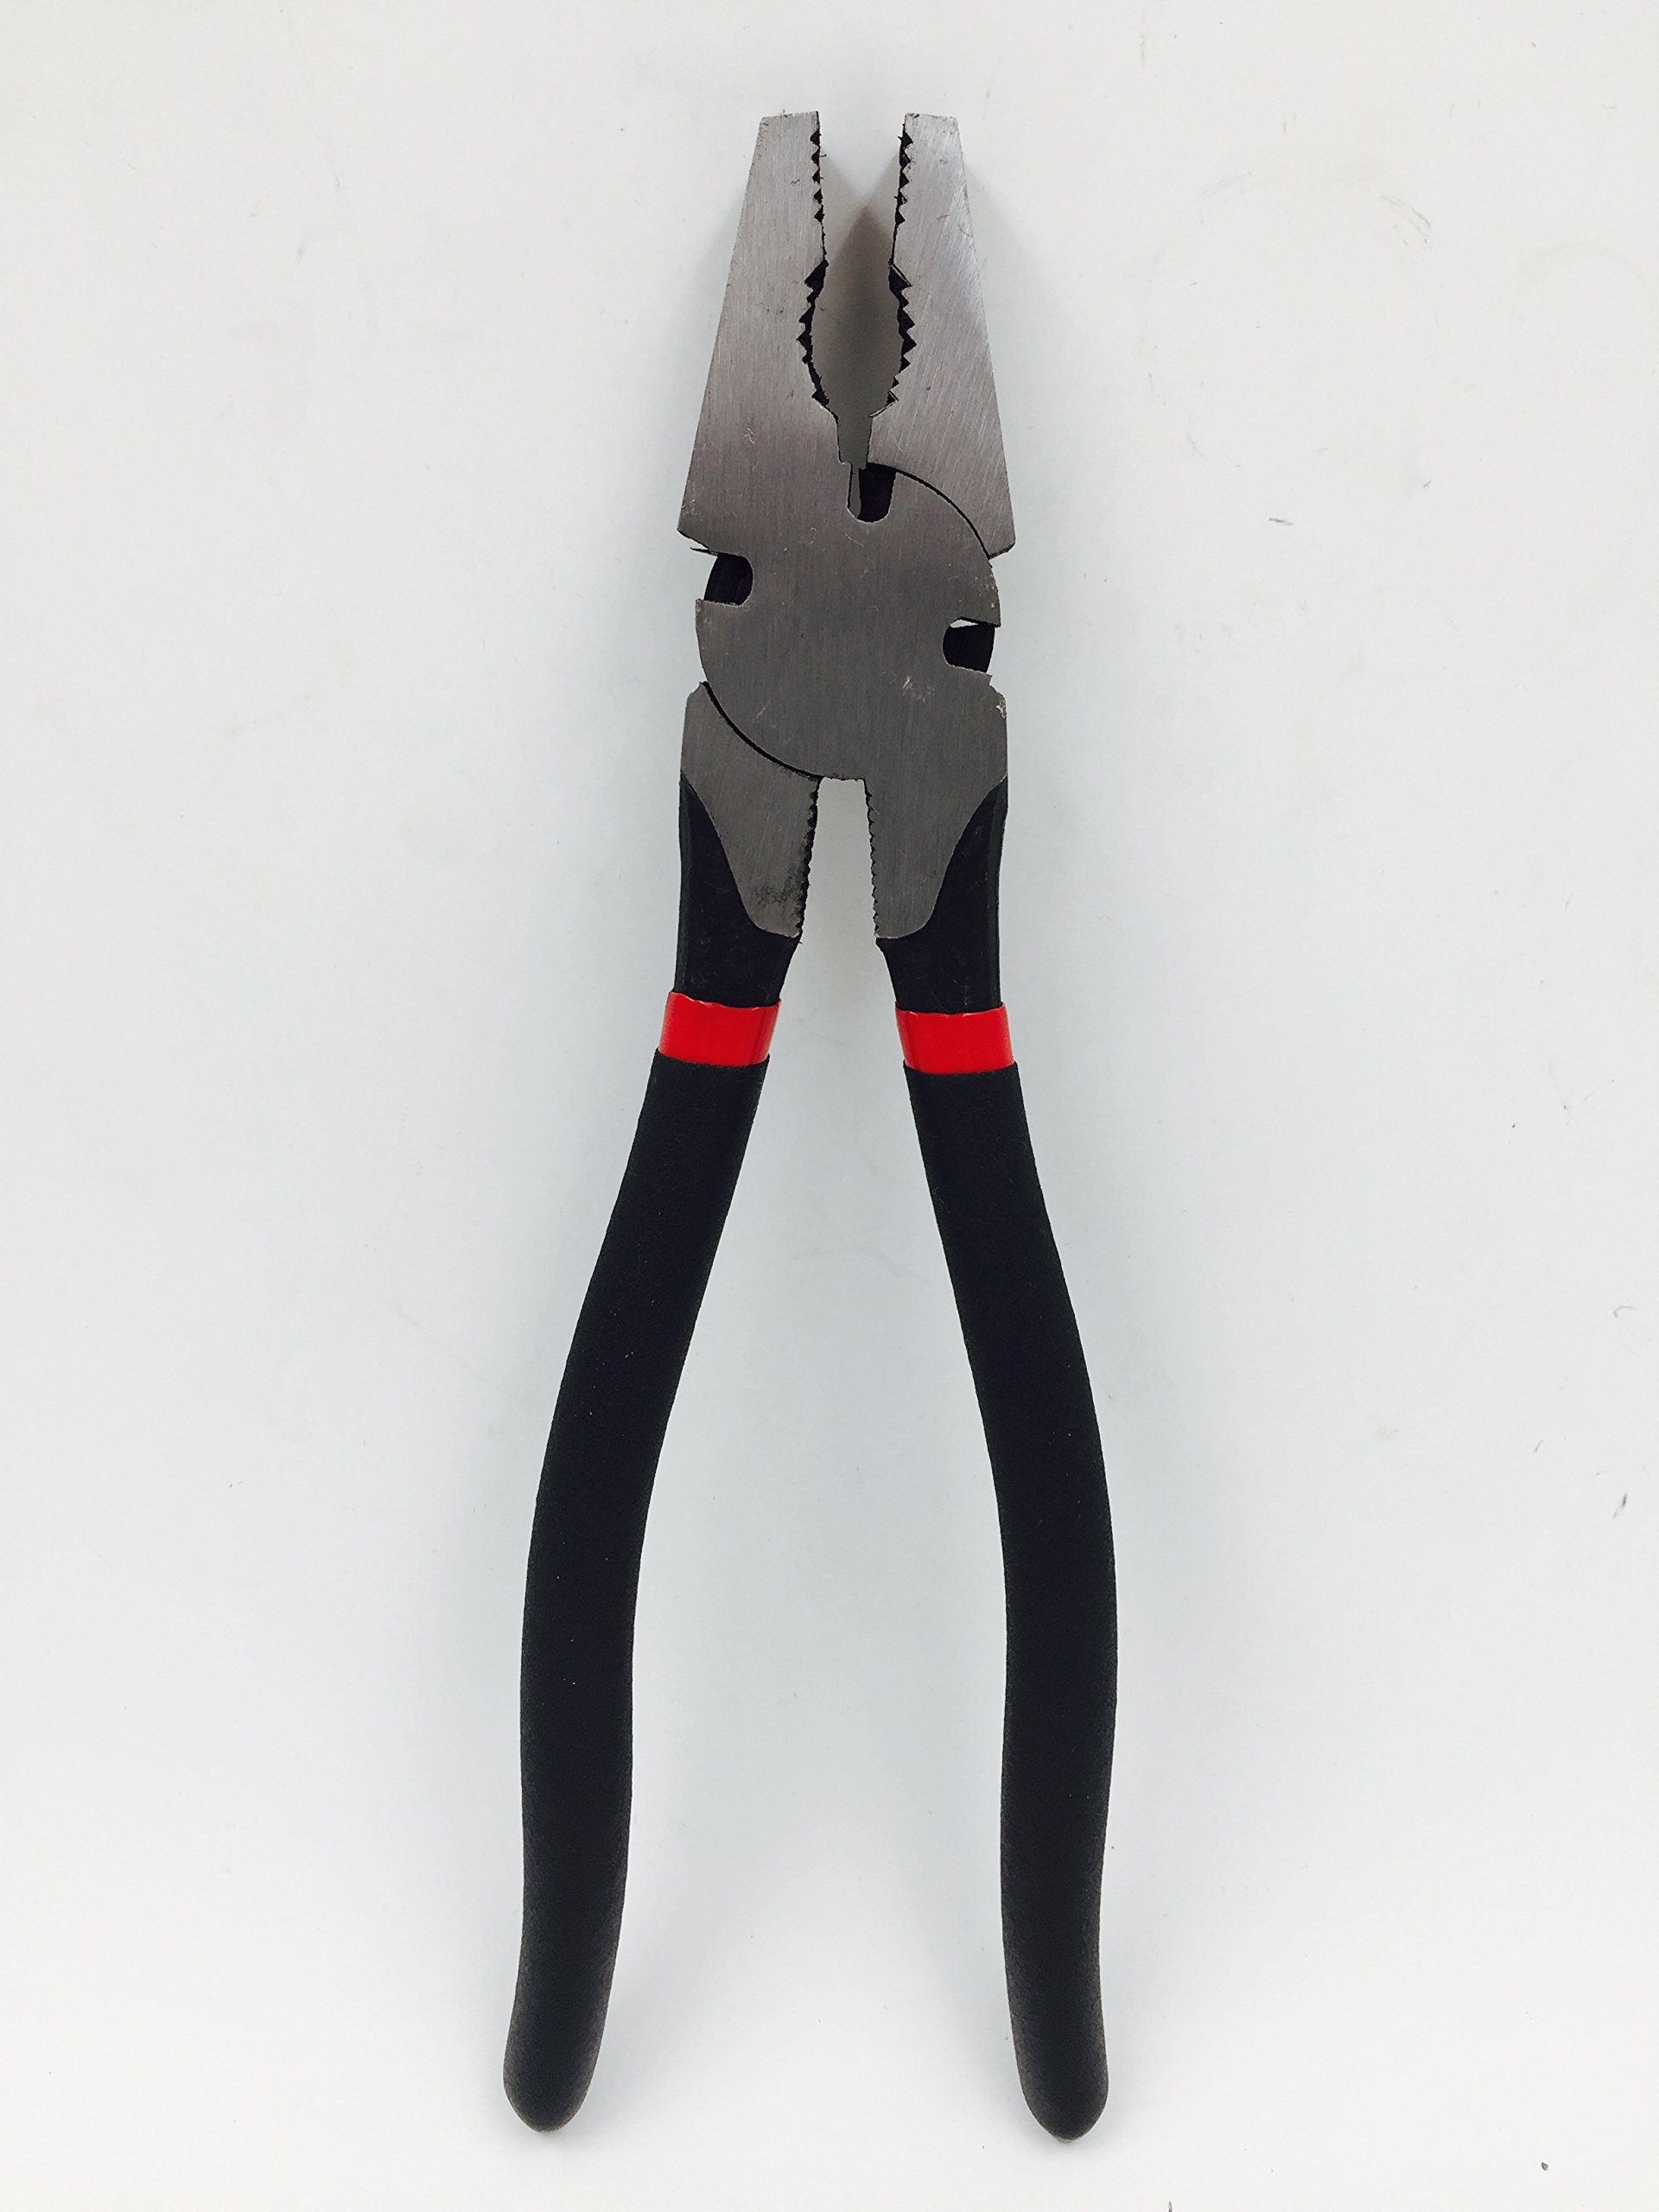 TruePower 10'' Heavy Duty Button Nose Fence Pliers Wire Cutter Crescent Style Forged Steel